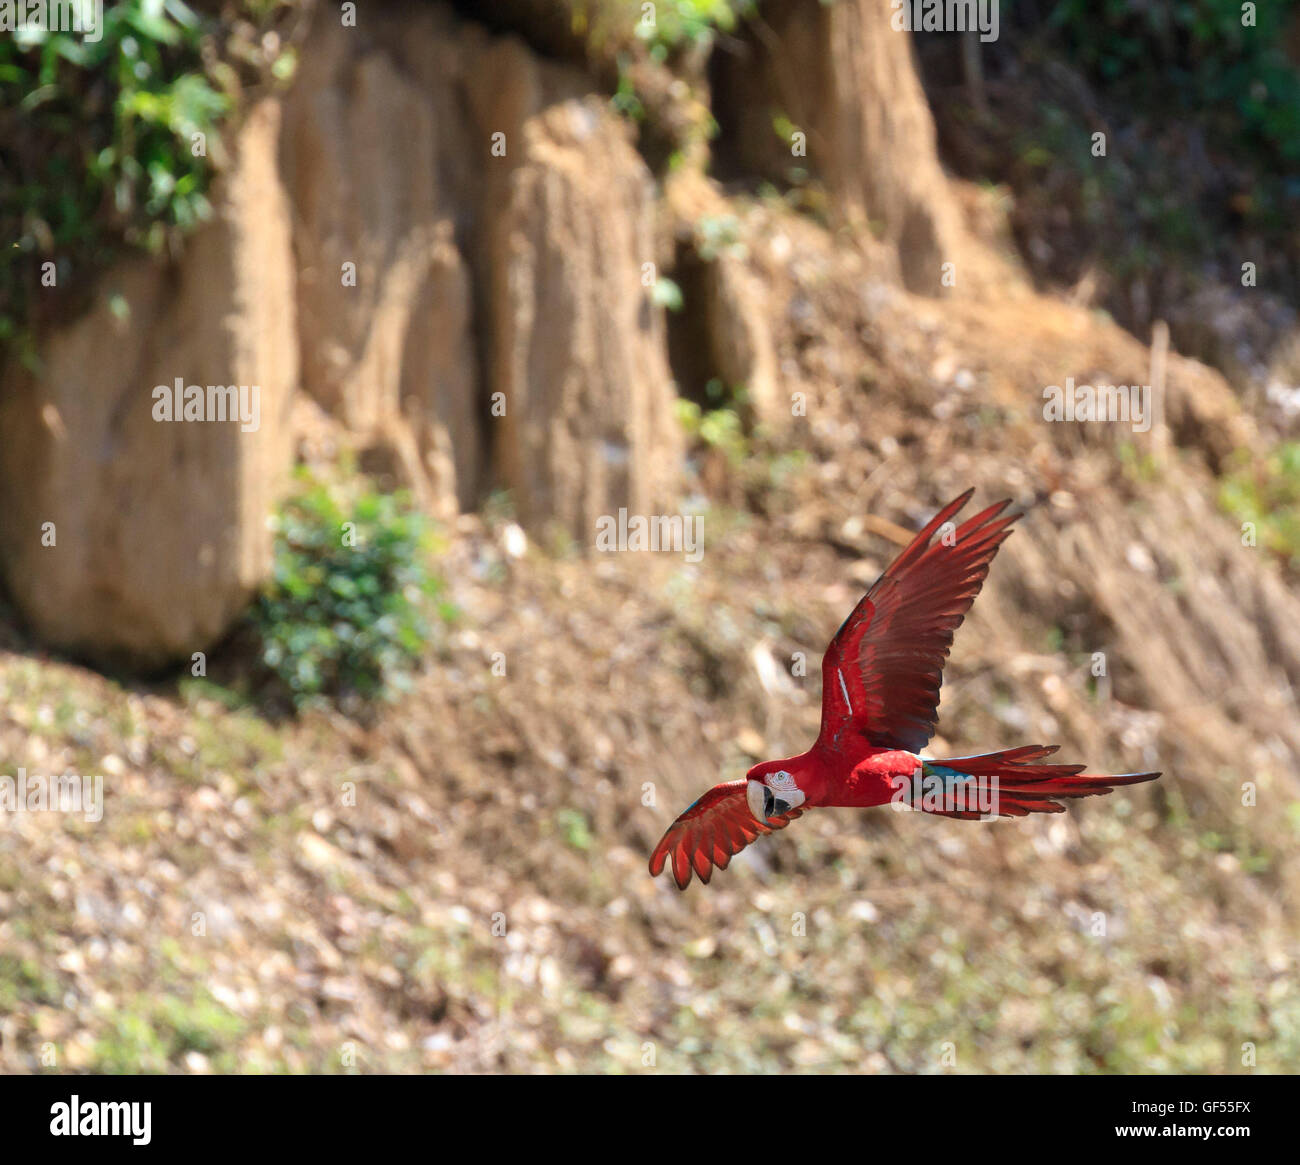 Red and Green Macaw, Blanquillo Clay Lick, Manú National Park, Peru - Stock Image